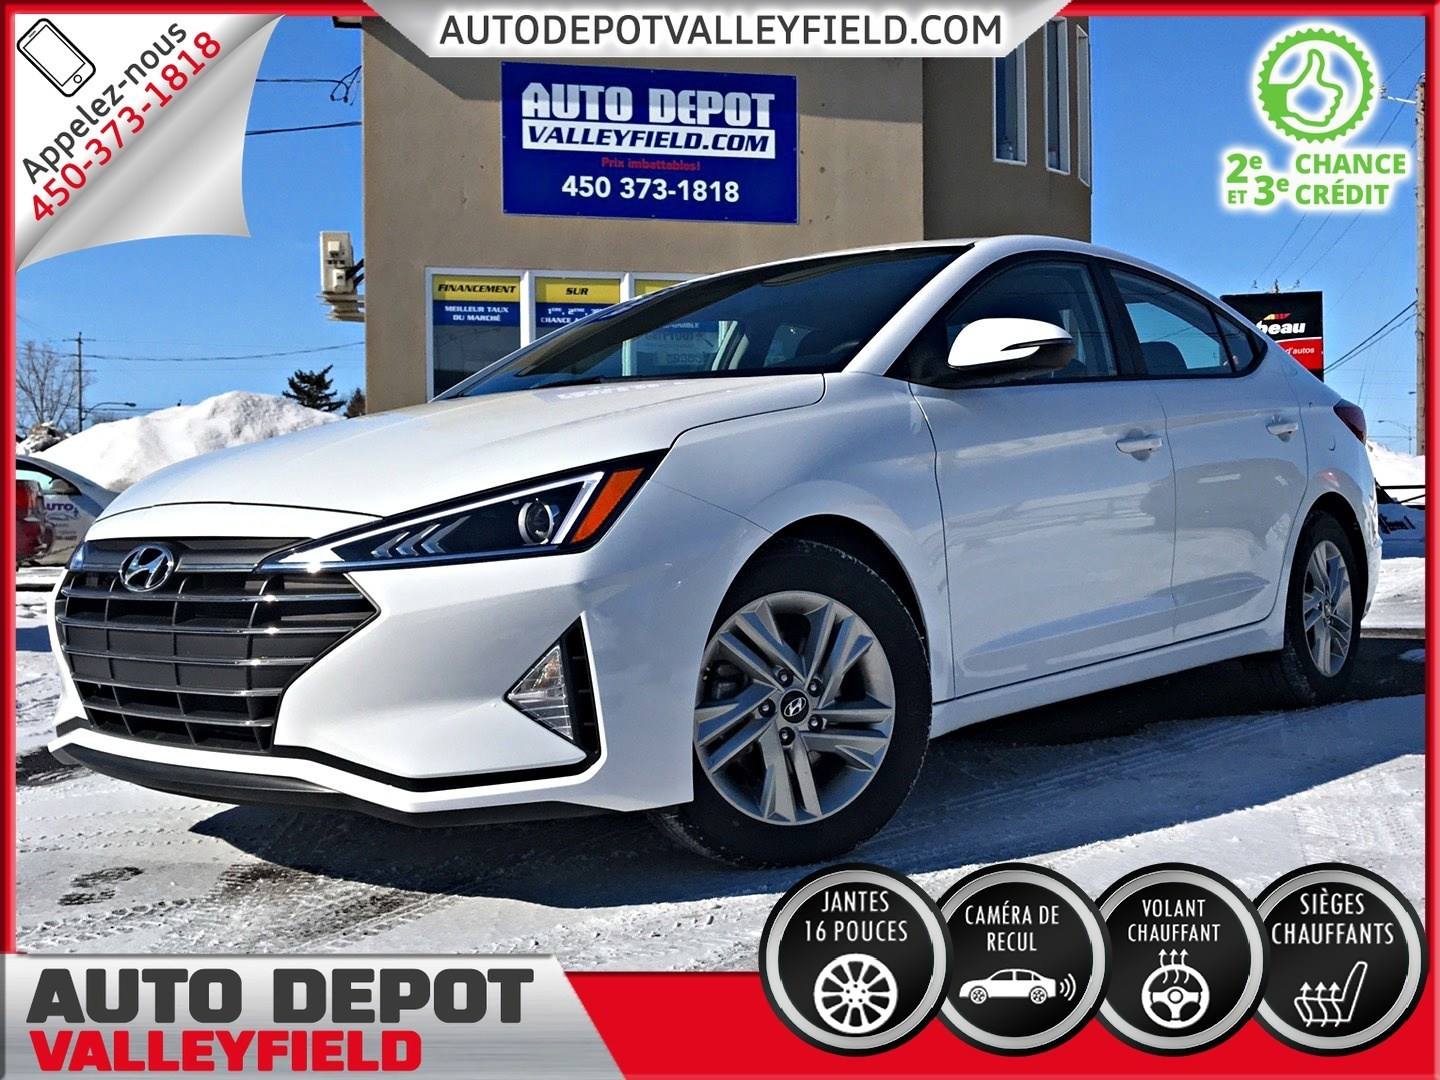 2019 Hyundai Elantra Prefered + Mags, Cruise, Camera Berline